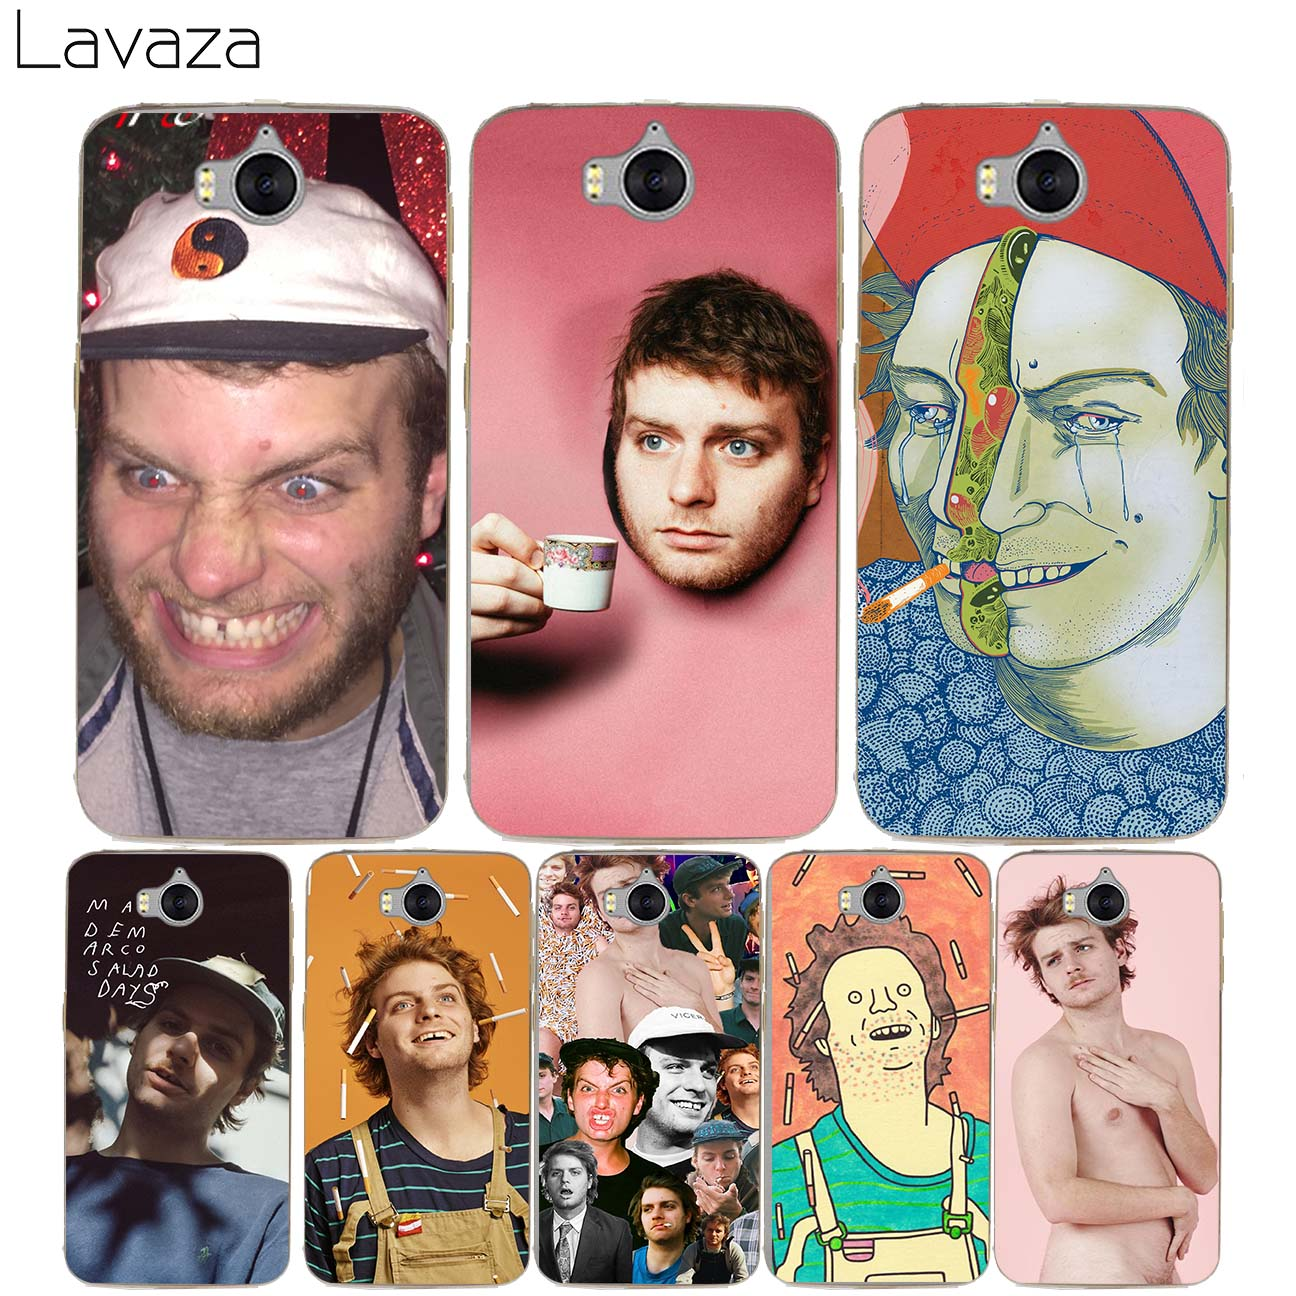 Lavaza Mac DeMarco Case for Huawei Honor Nova 2 2i 2s 9 8 lite 7 7X 6 6C 6X 6A Y7 Y6 Y5  ...